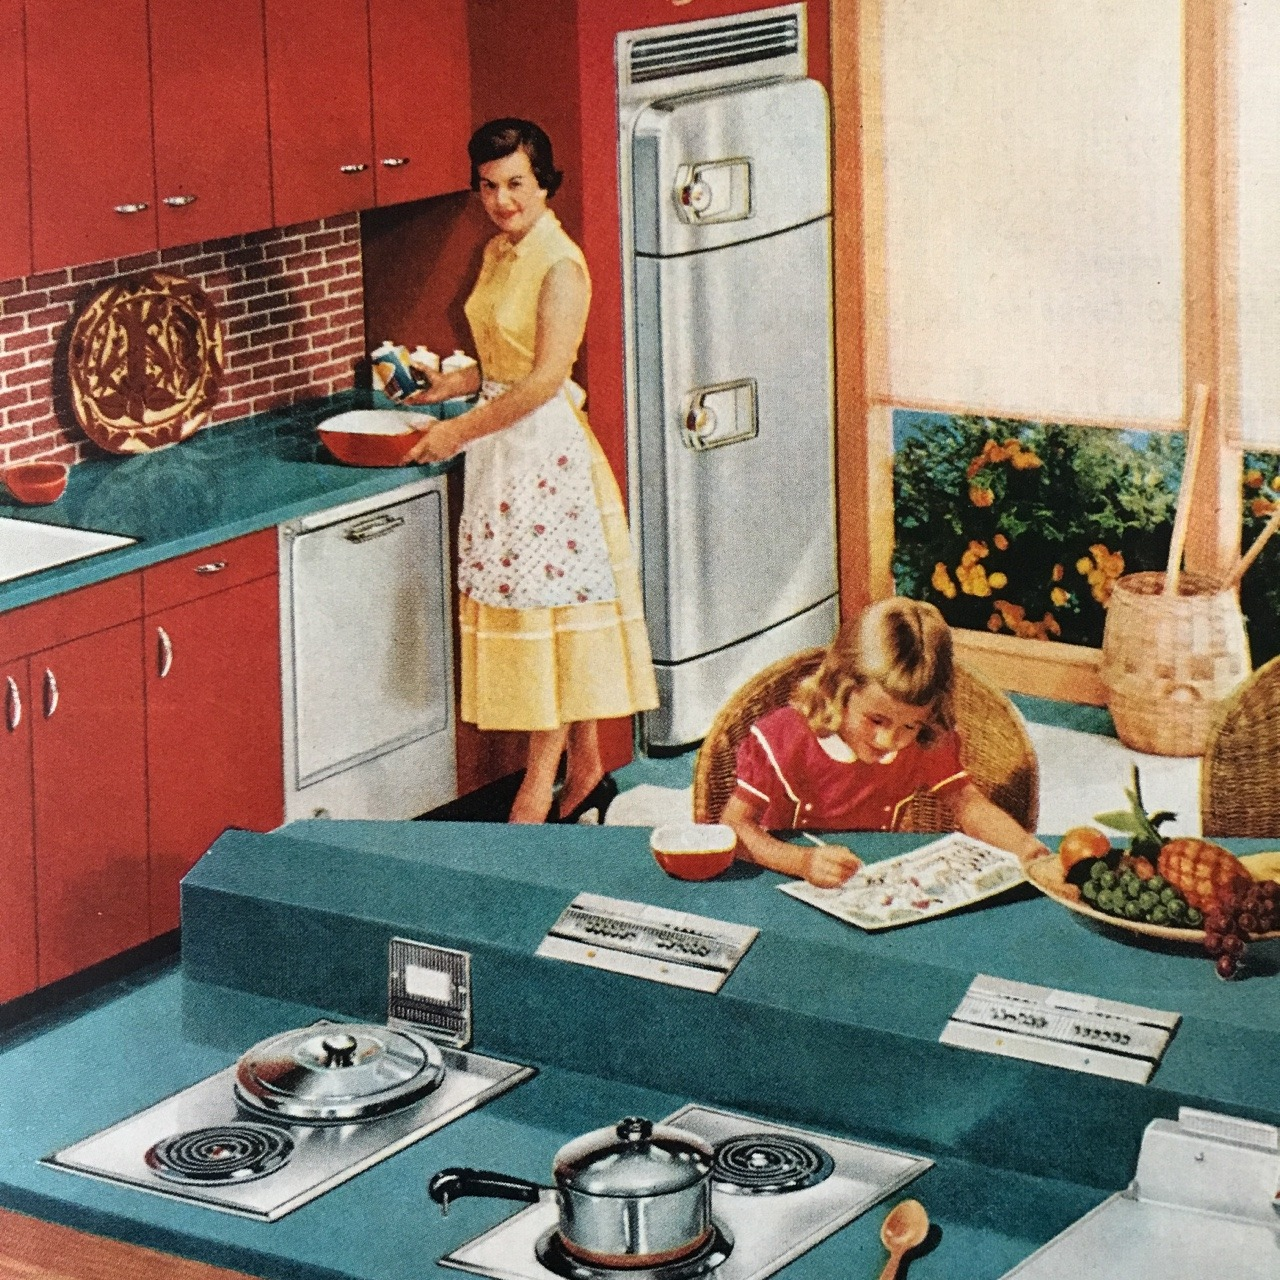 Detail from a Hotpoint appliances ad.   Better Homes and Gardens. May 1956.